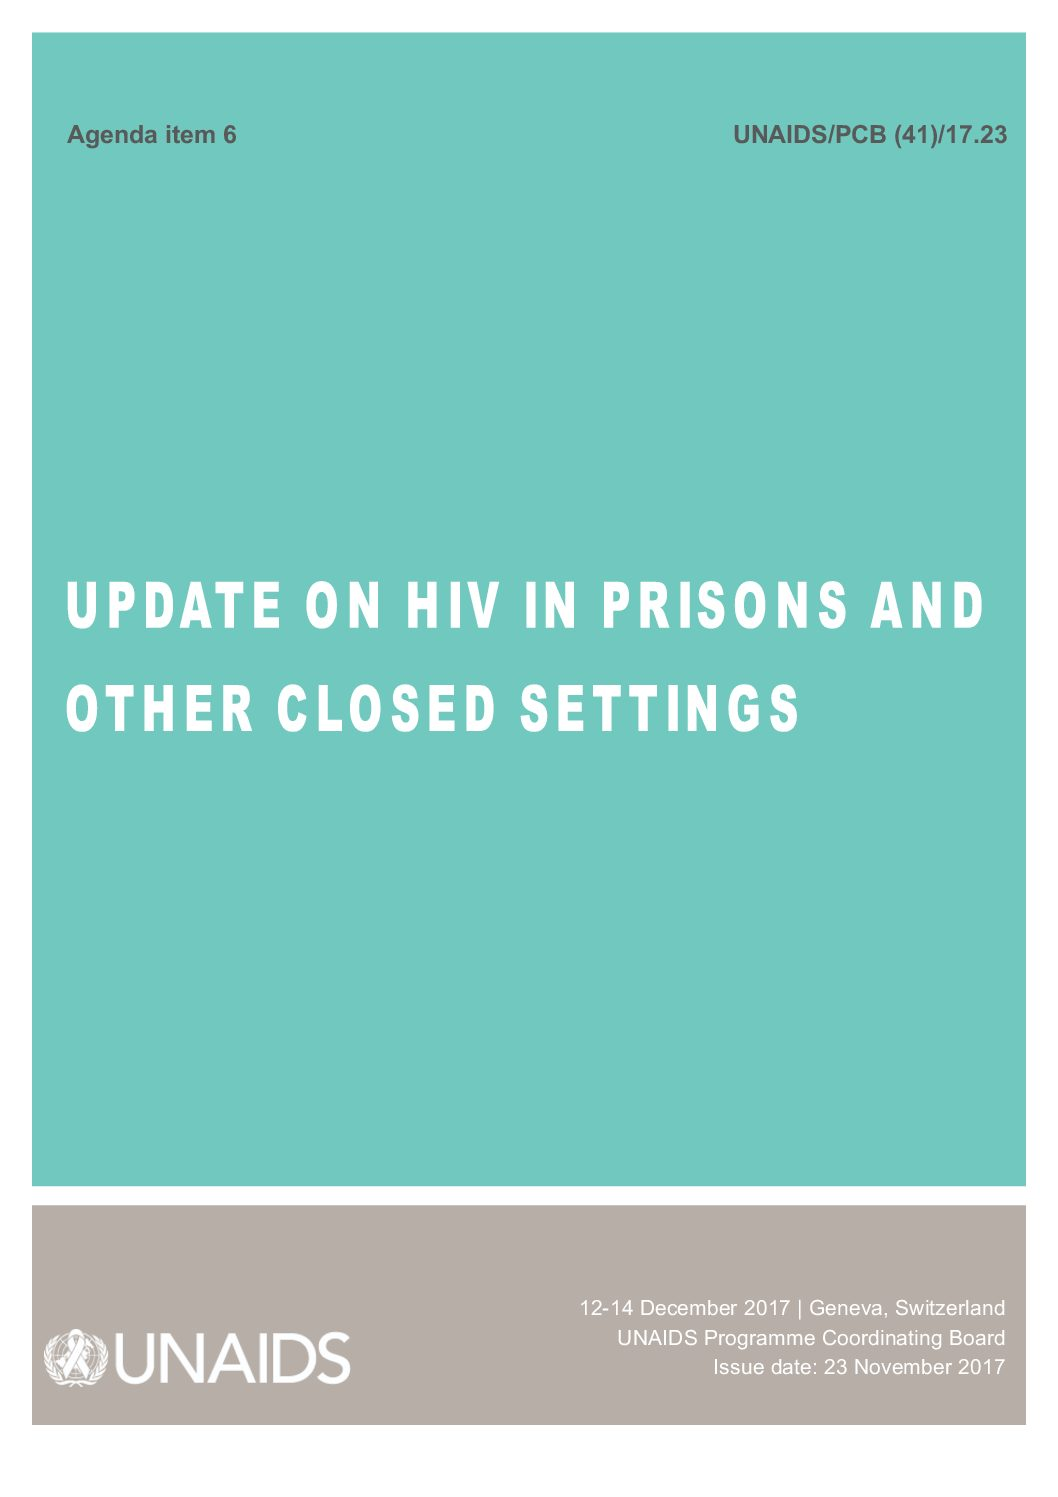 Update on HIV in Prison and other closed settings